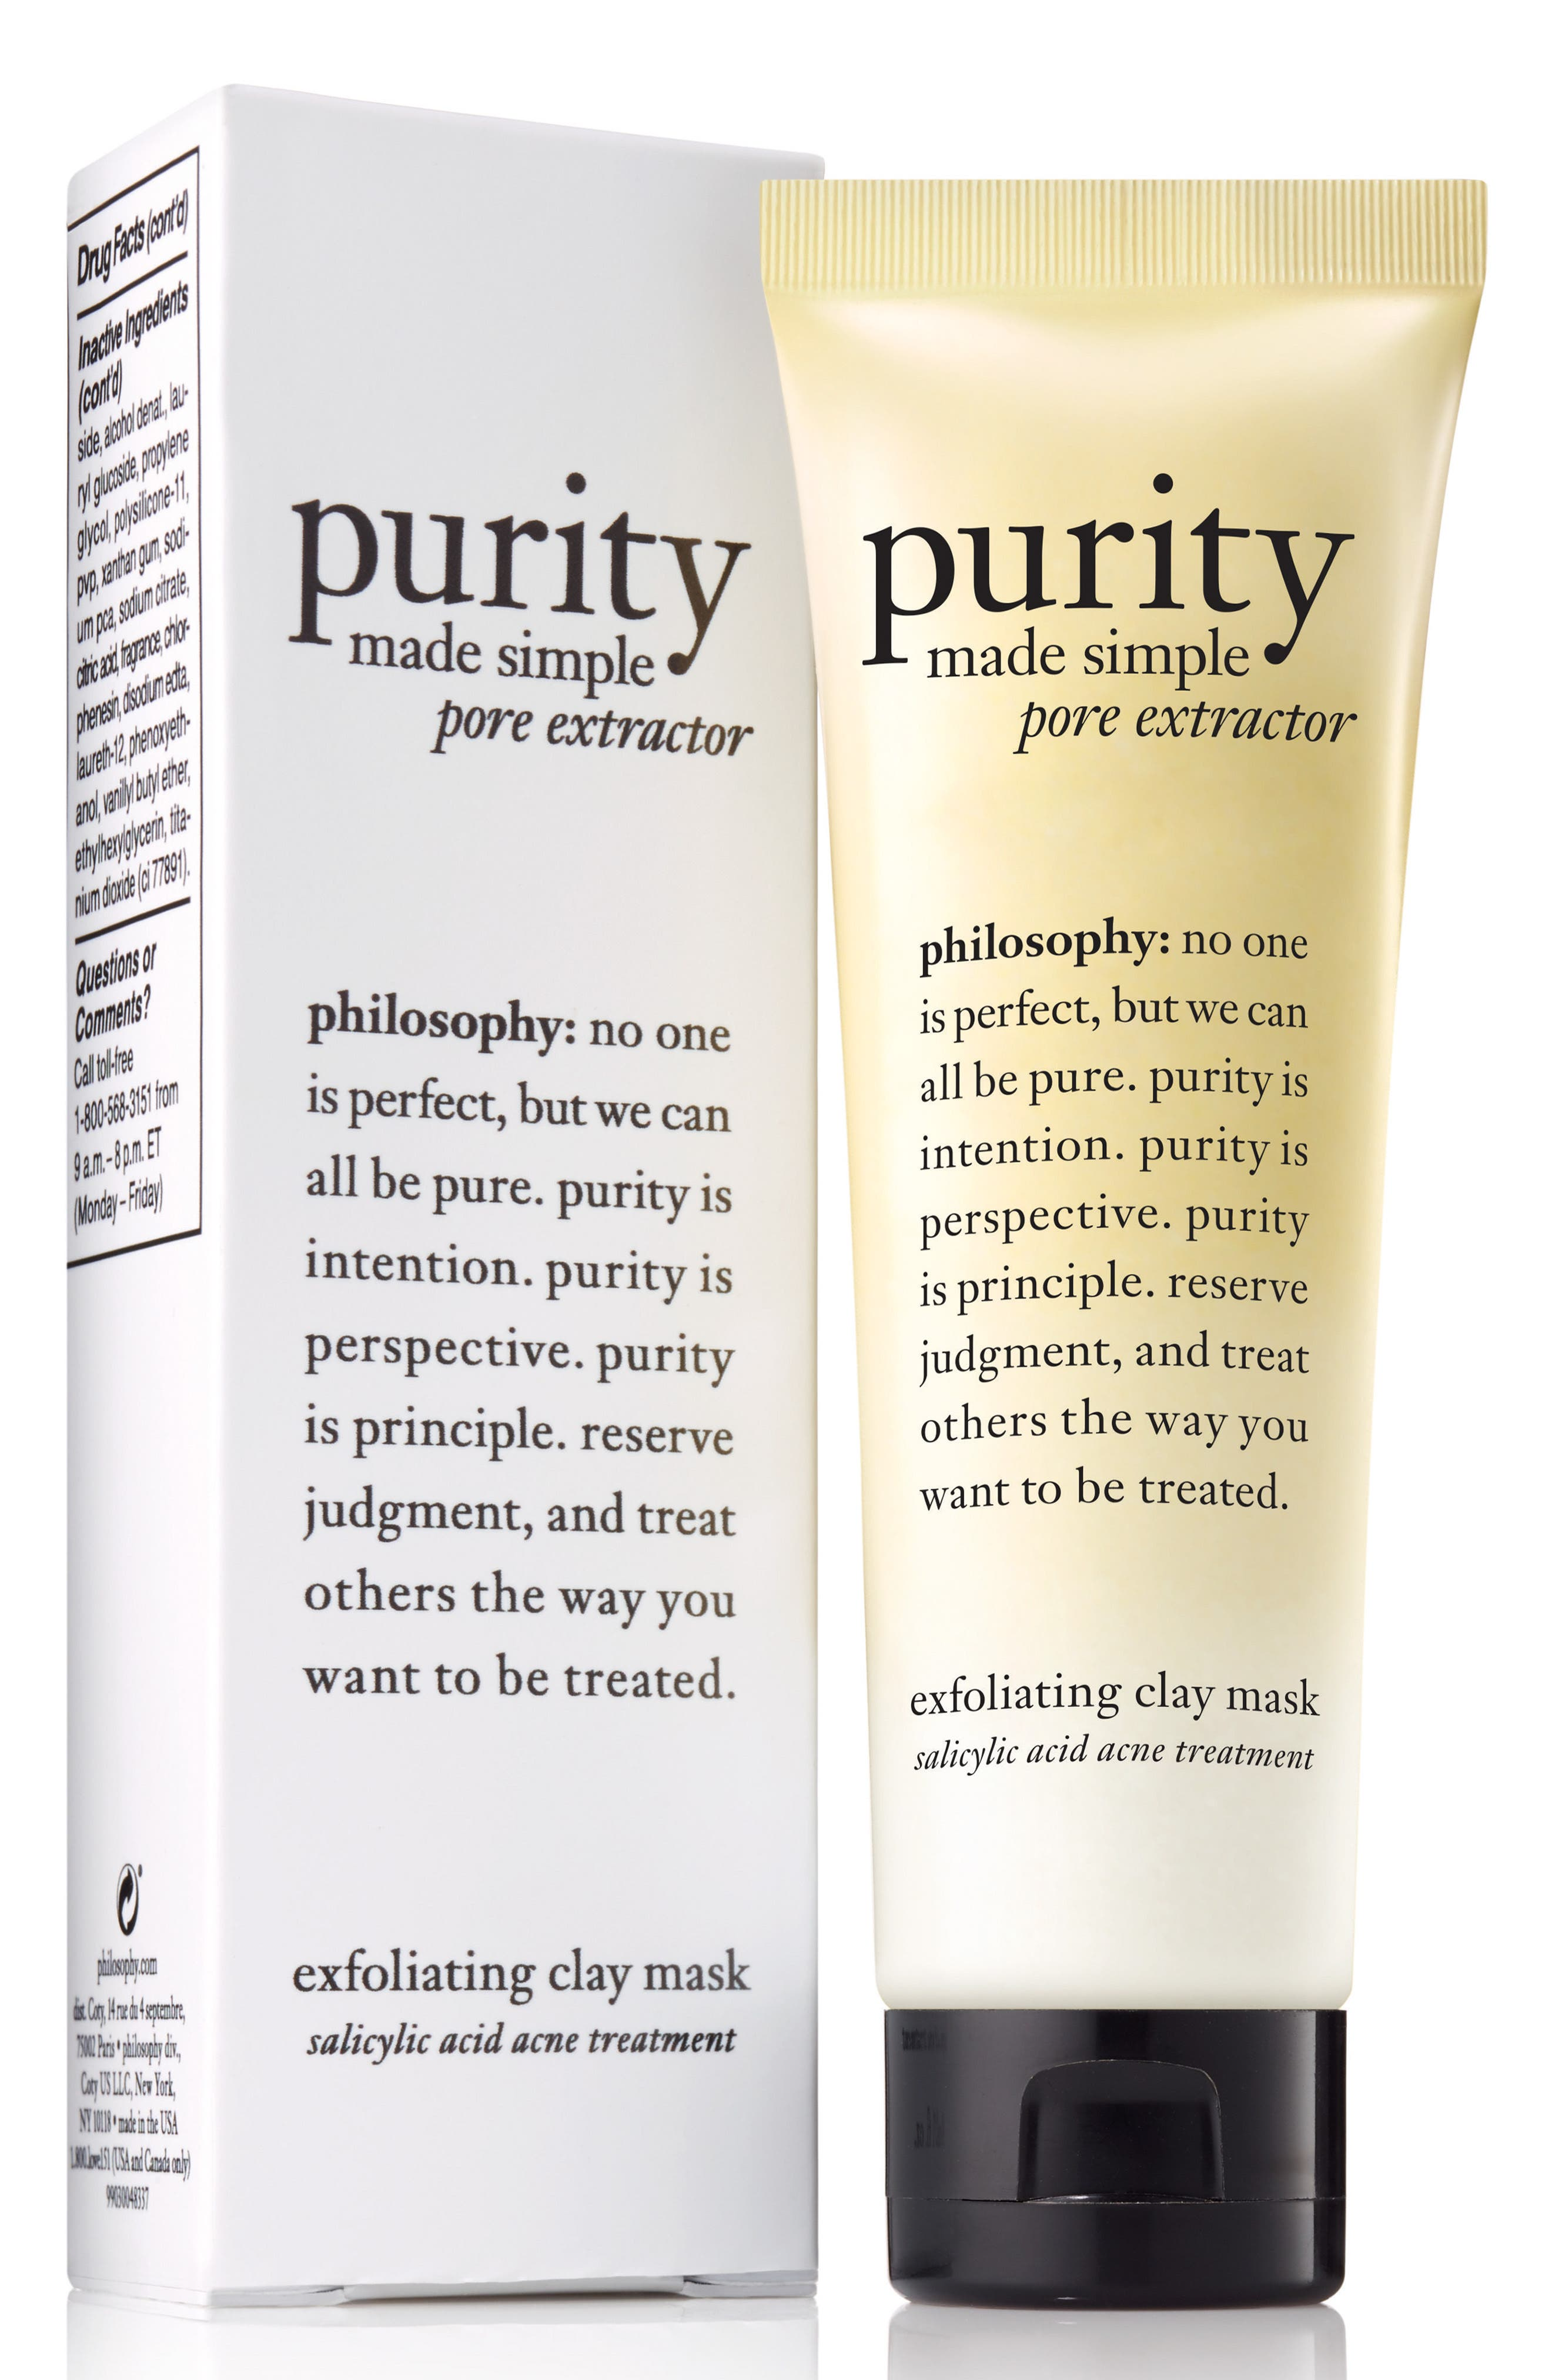 philosophy purity made simple pore extractor clay mask